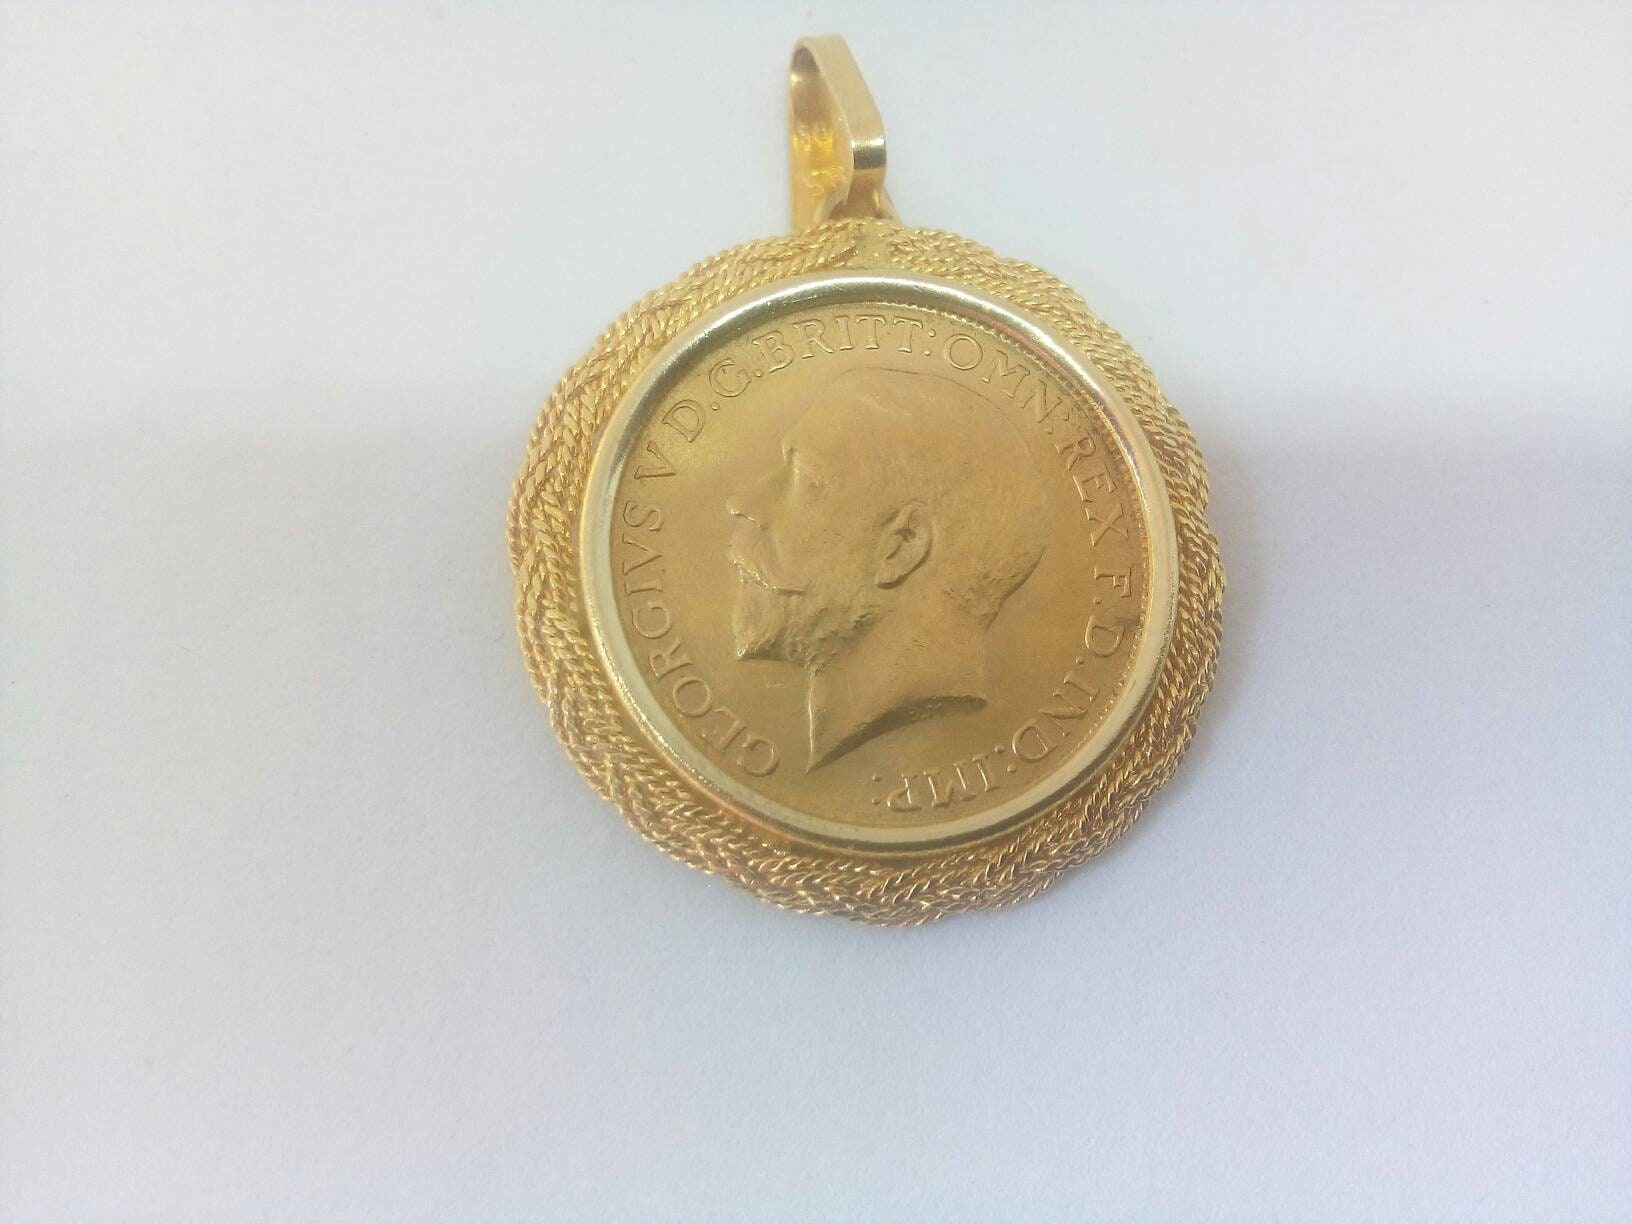 1925 gold sovereign king george v pendant with 18k gold bezel gold 1925 gold sovereign king george v pendant with 18k gold bezel gold coin pendant anniversary birthday gift aloadofball Image collections